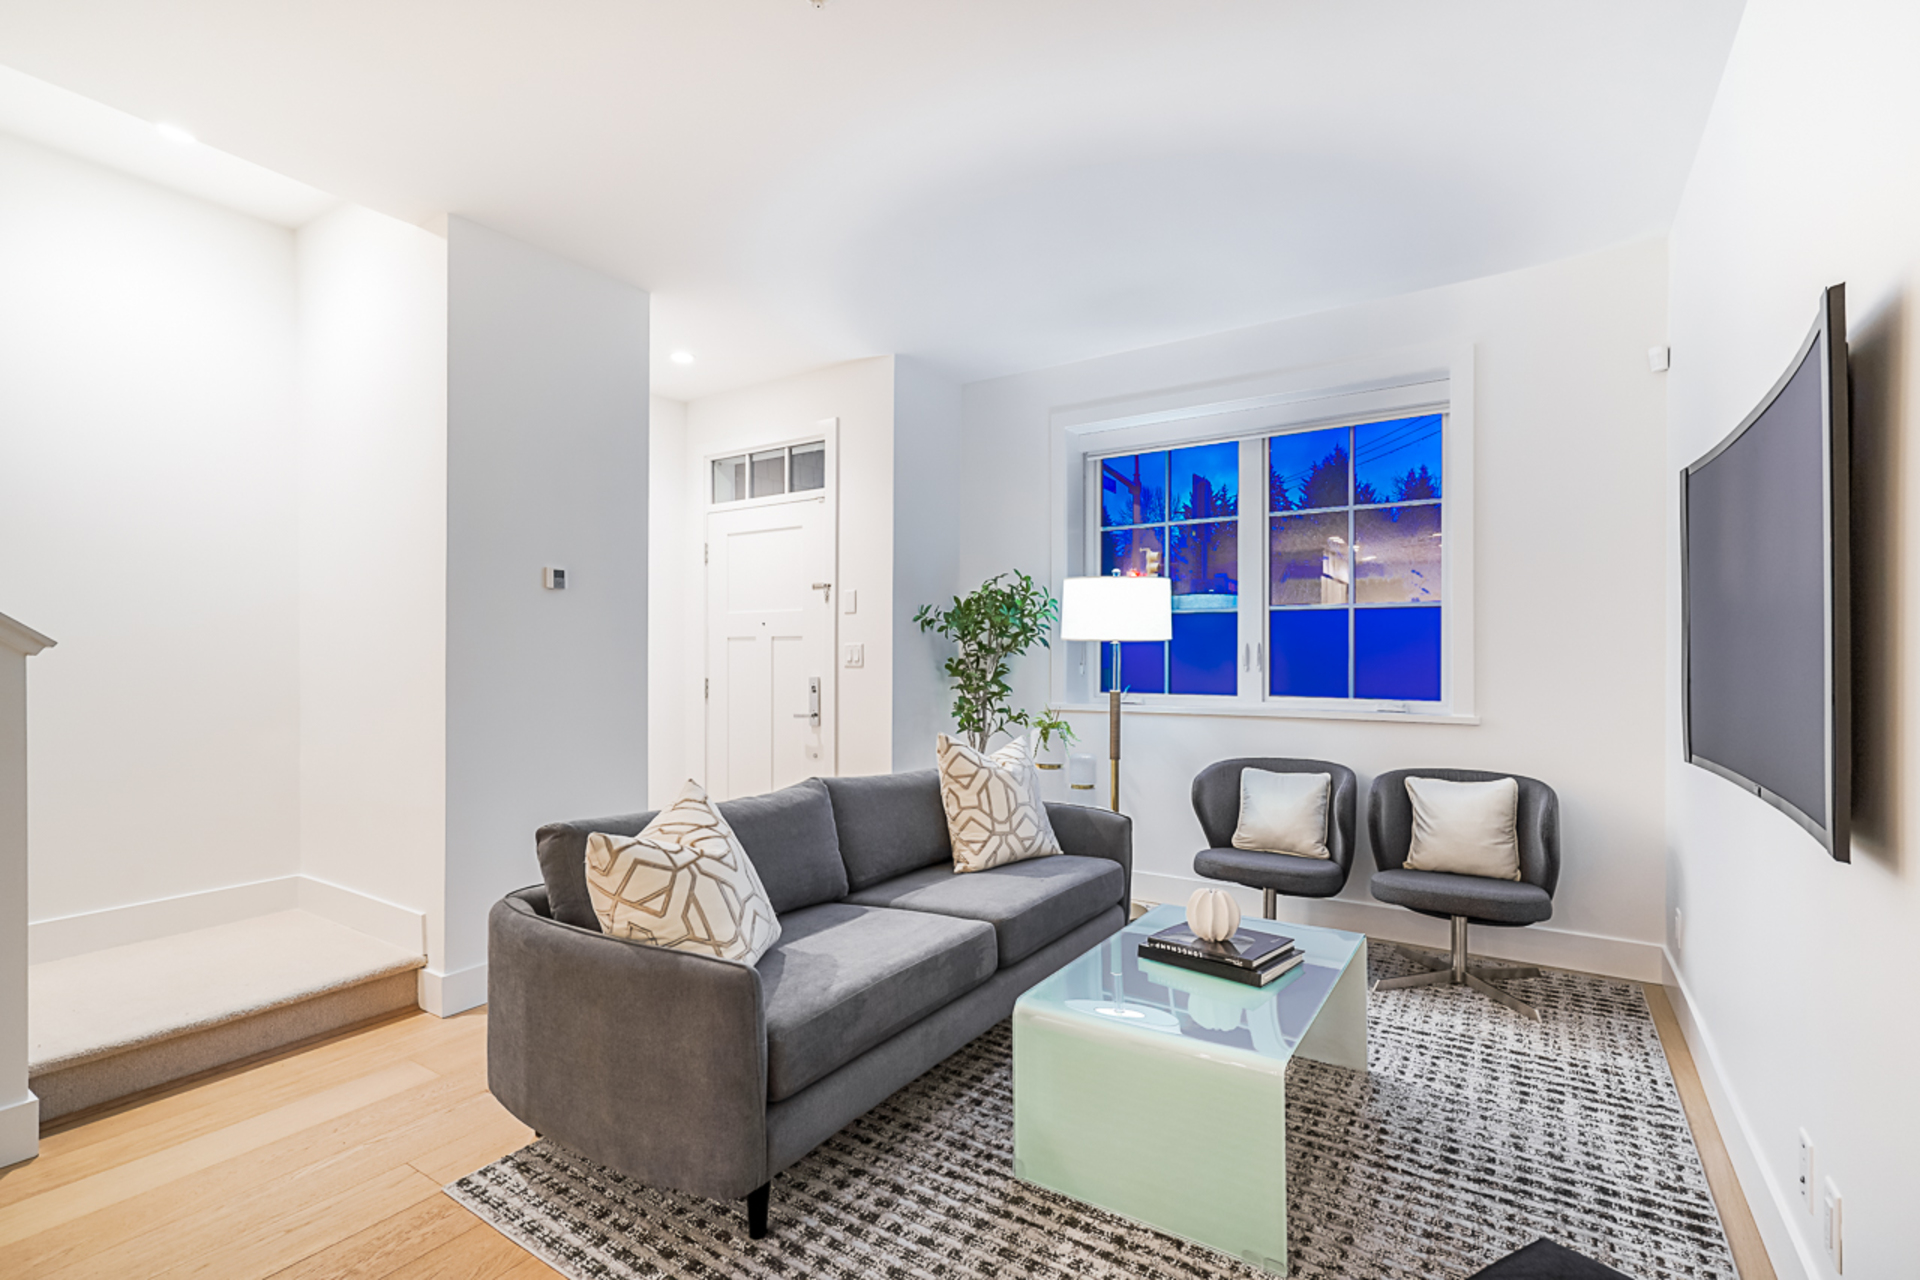 unit-11-1133-rigewood-drive-north-vancouver-7 at 11 - 1133 Ridgewood Drive, Edgemont, North Vancouver